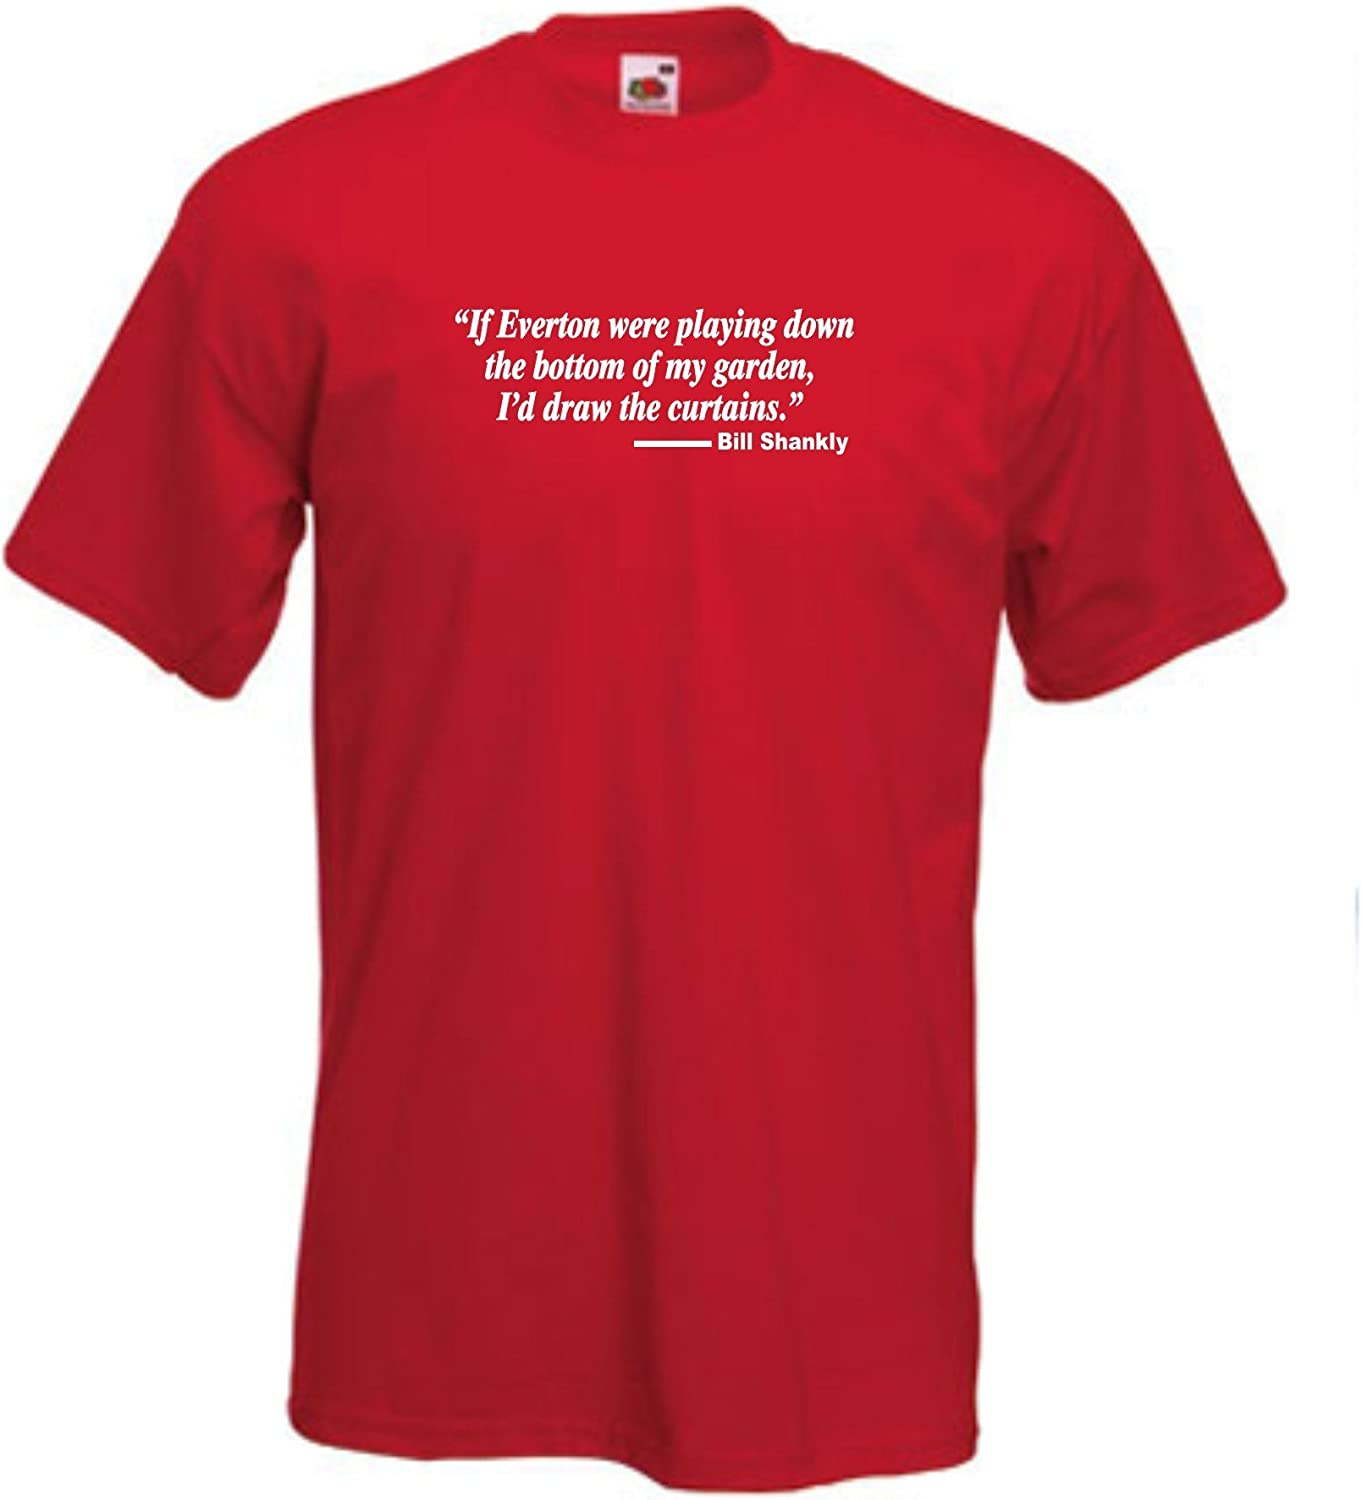 Invicta Screen Printers Liverpool FC Bill Shankly Curtains Quote Football Club T-Shirt Small to 5XL